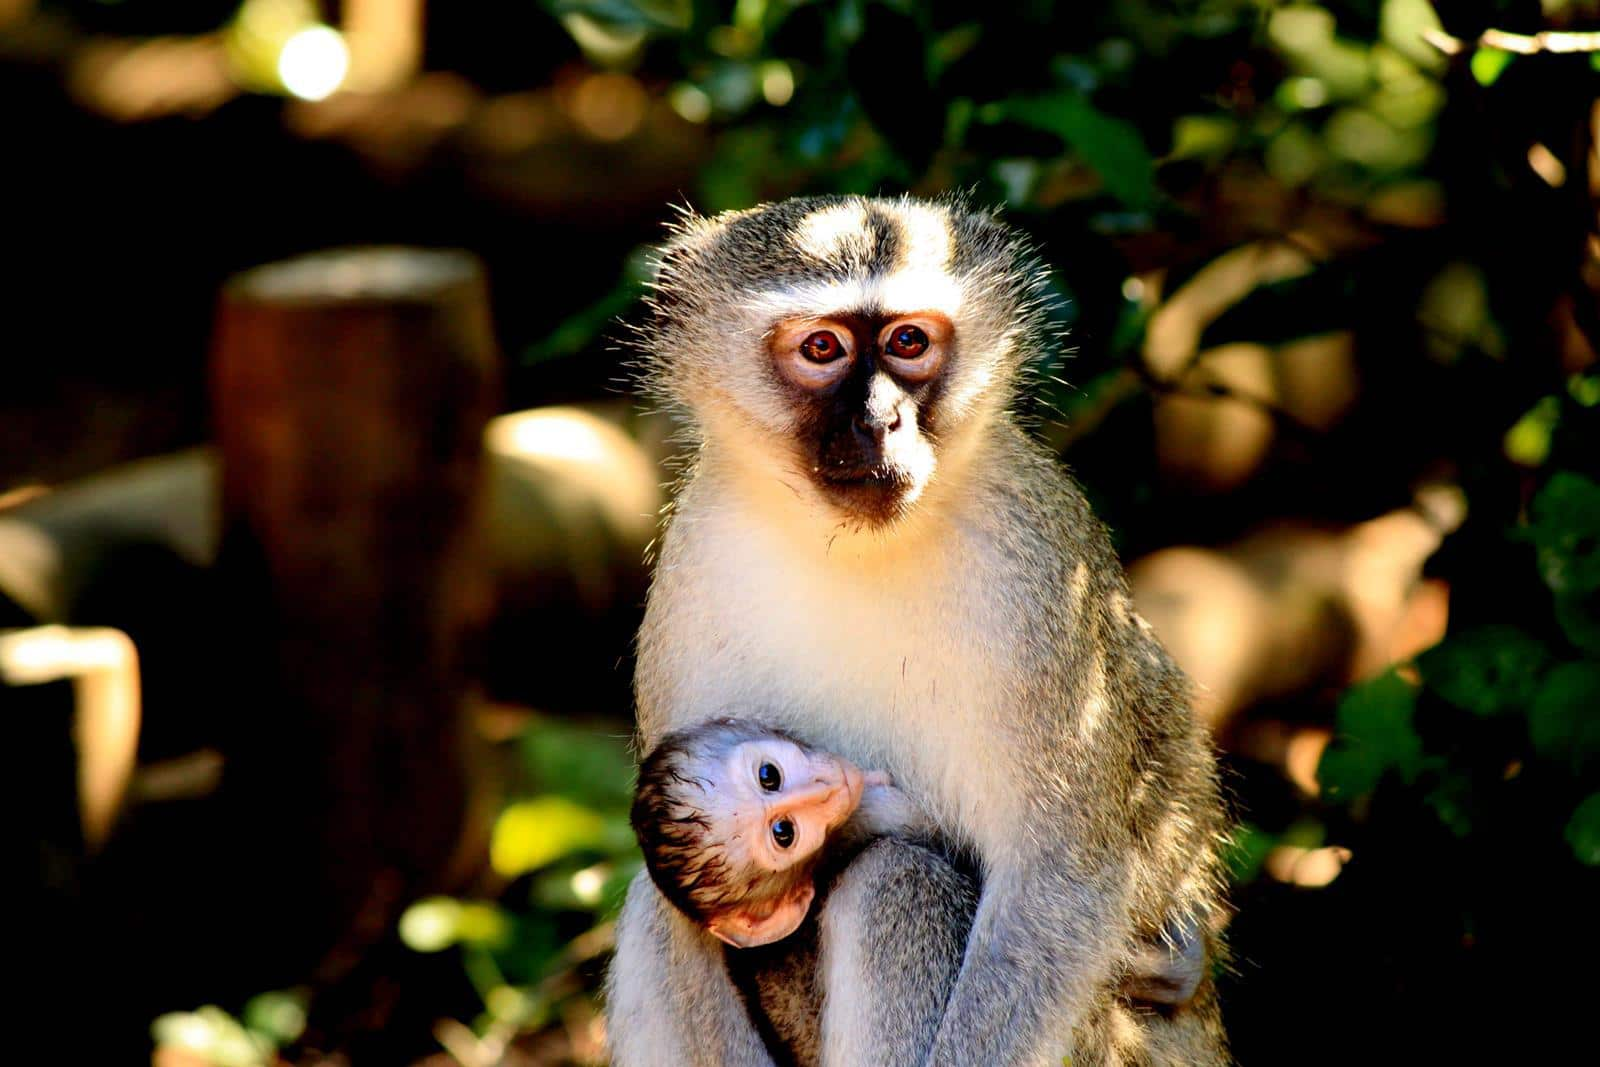 A vervet monkey mother carrying her baby.